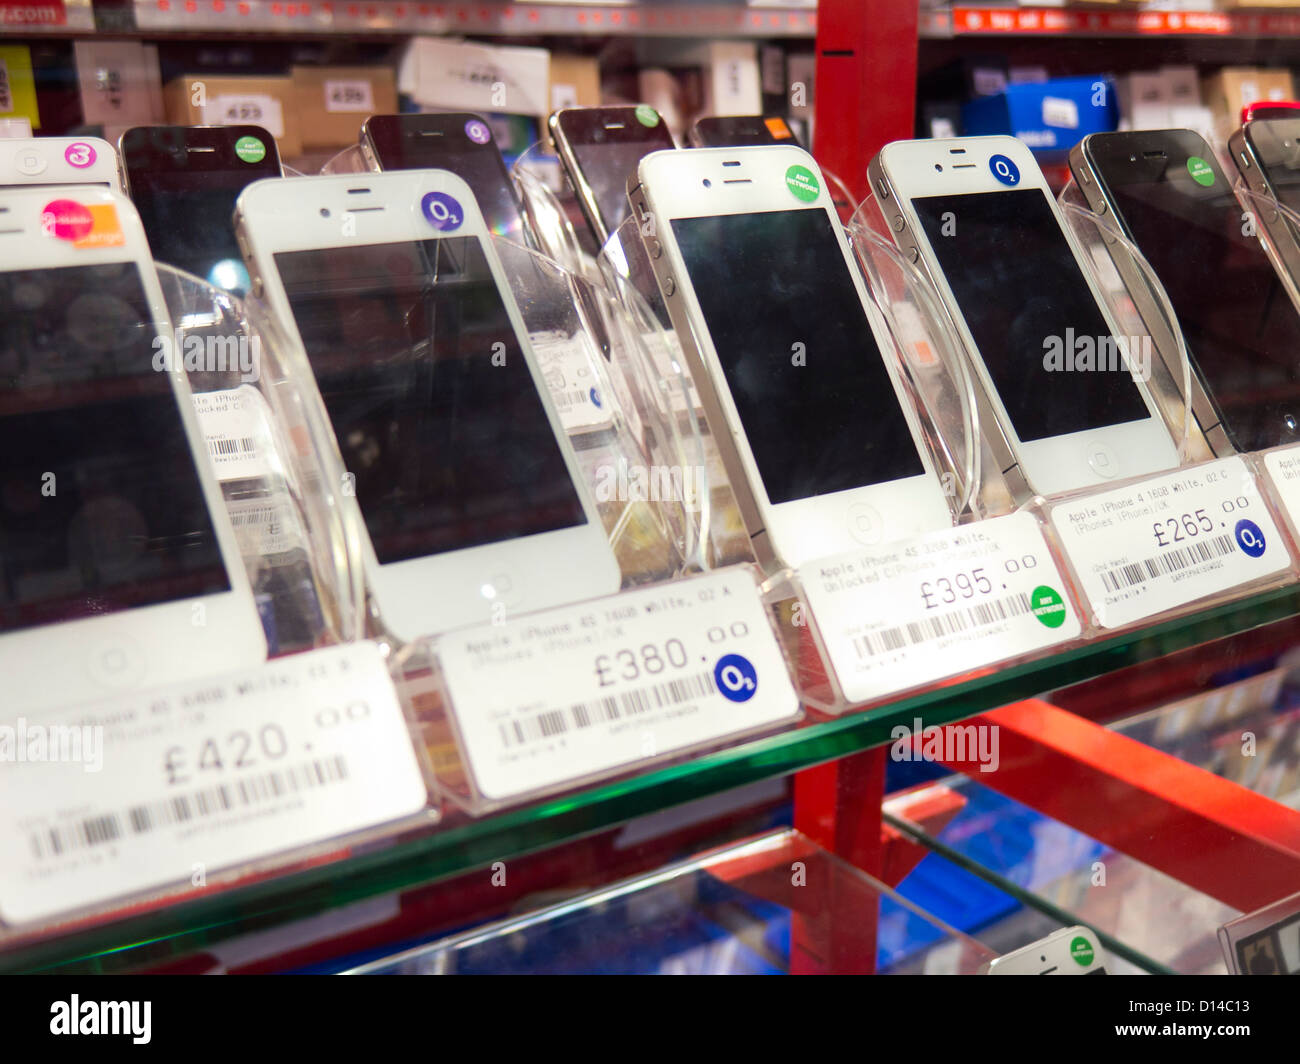 second hand mobile phones smartphones Stock Photo: 52343007 - Alamy